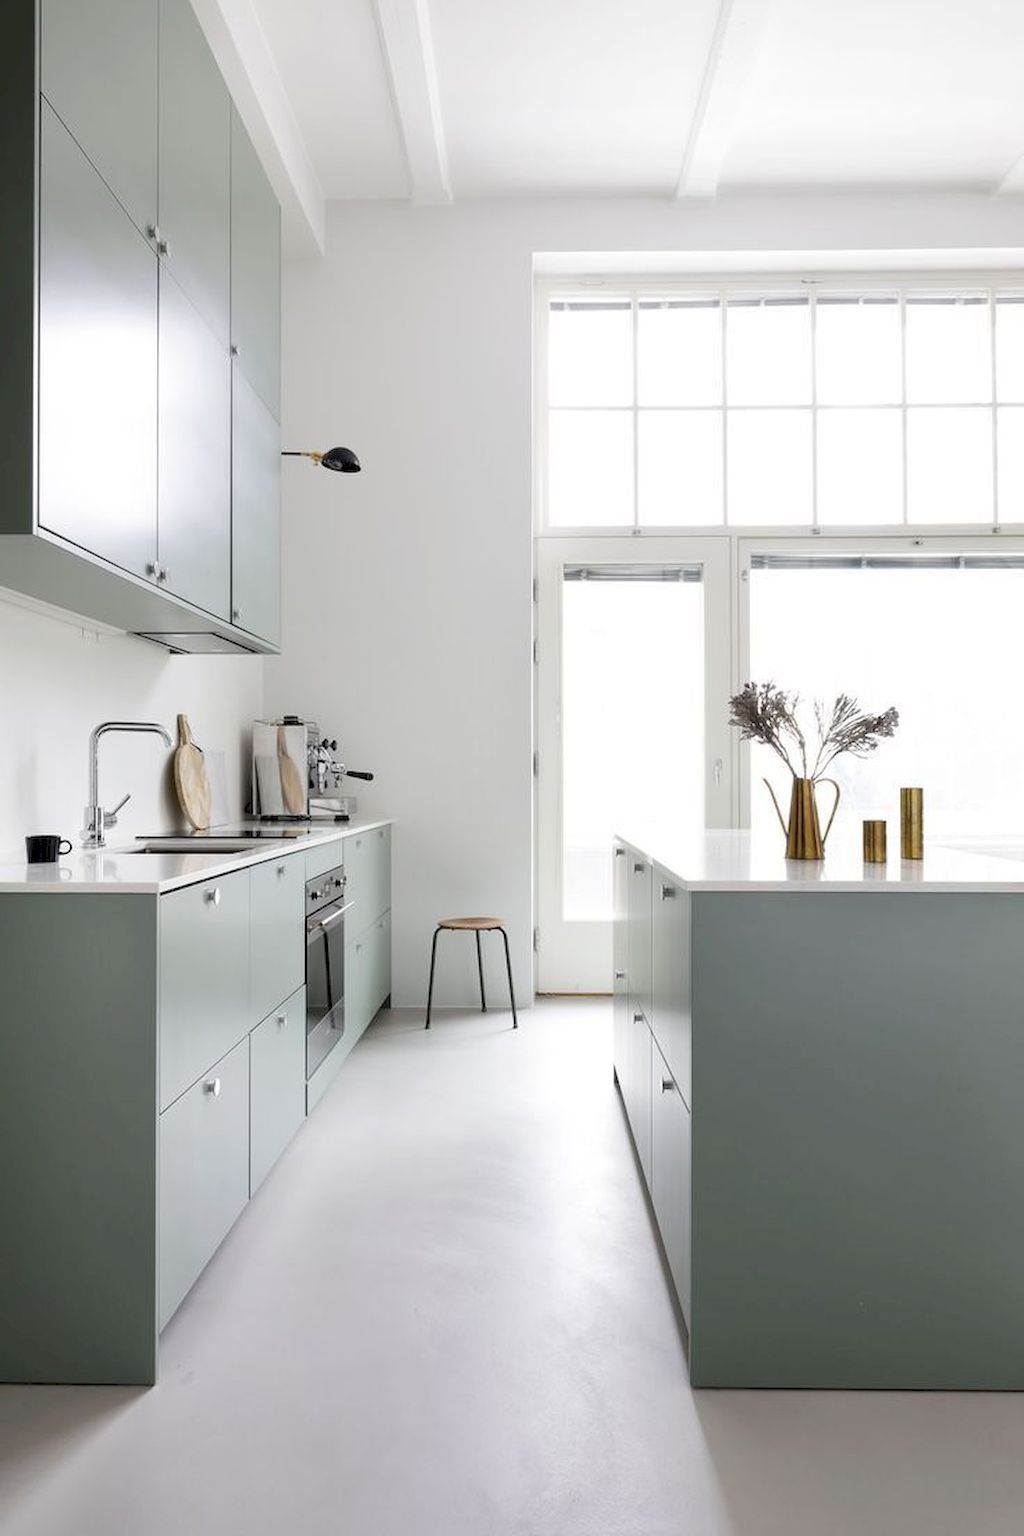 Elegant Minimalist Kitchen Design Ideas For Small Space To Try 09